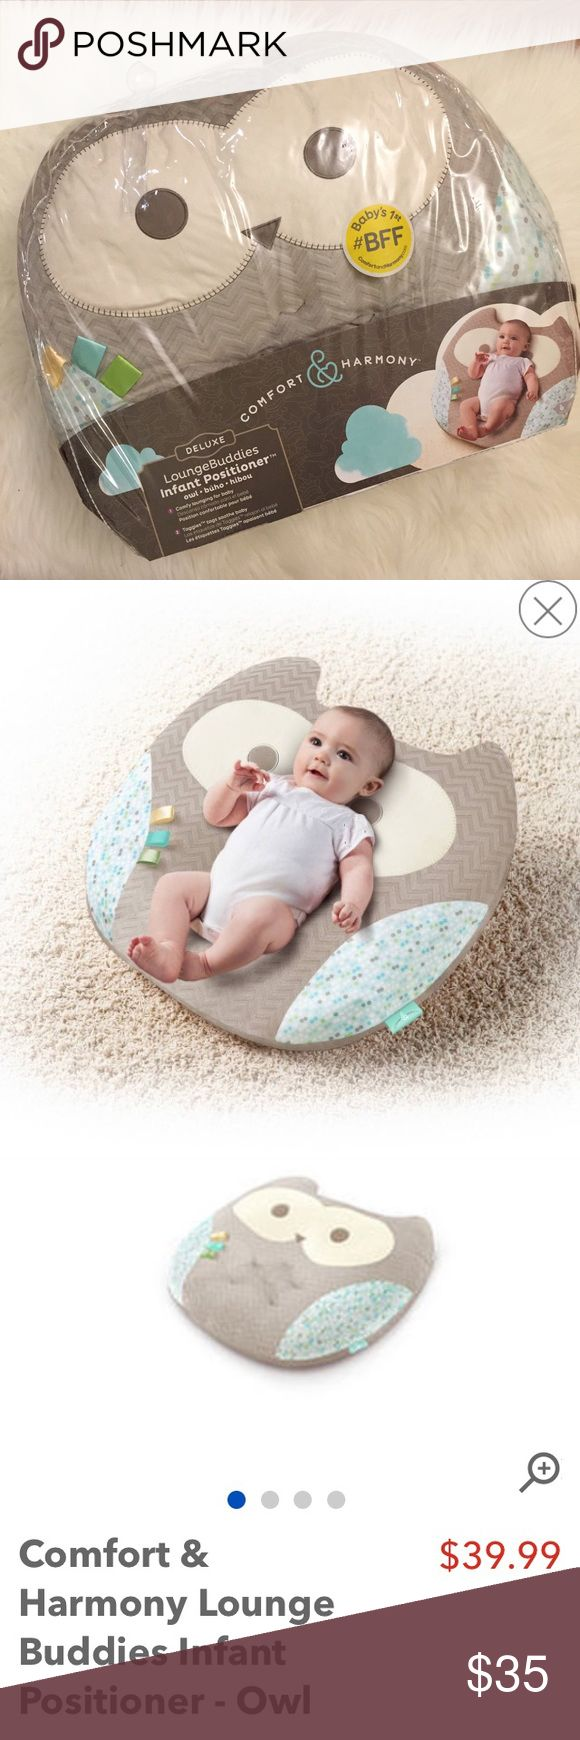 best Places to Visit images on Pinterest  Baby bassinet Baby